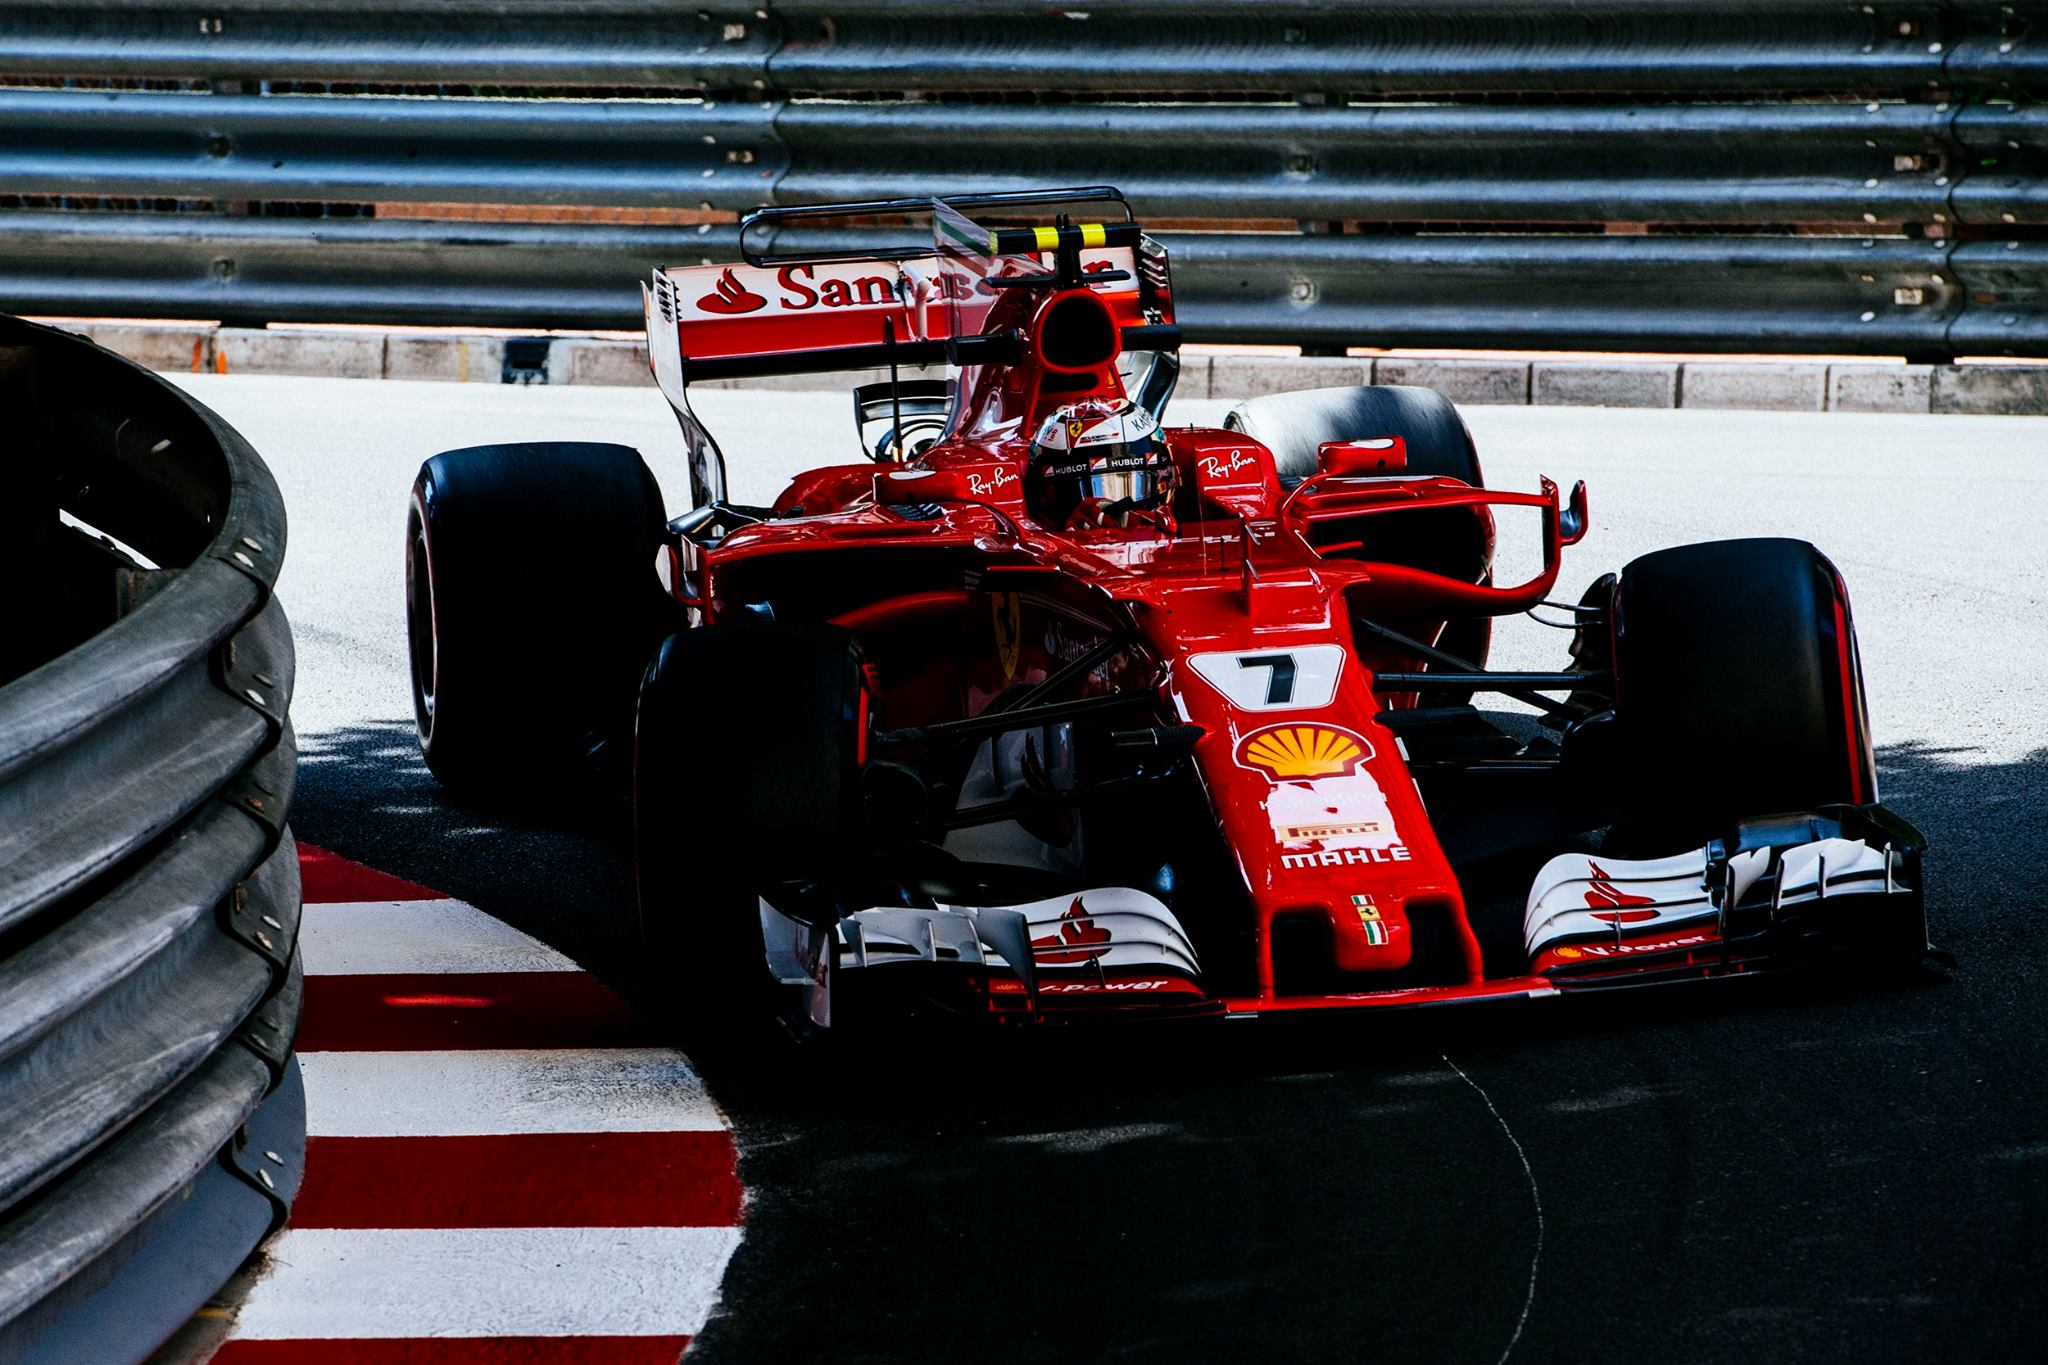 f1 raikkonen leads ferrari 1 2 qualifying at monaco gp gtspirit. Black Bedroom Furniture Sets. Home Design Ideas